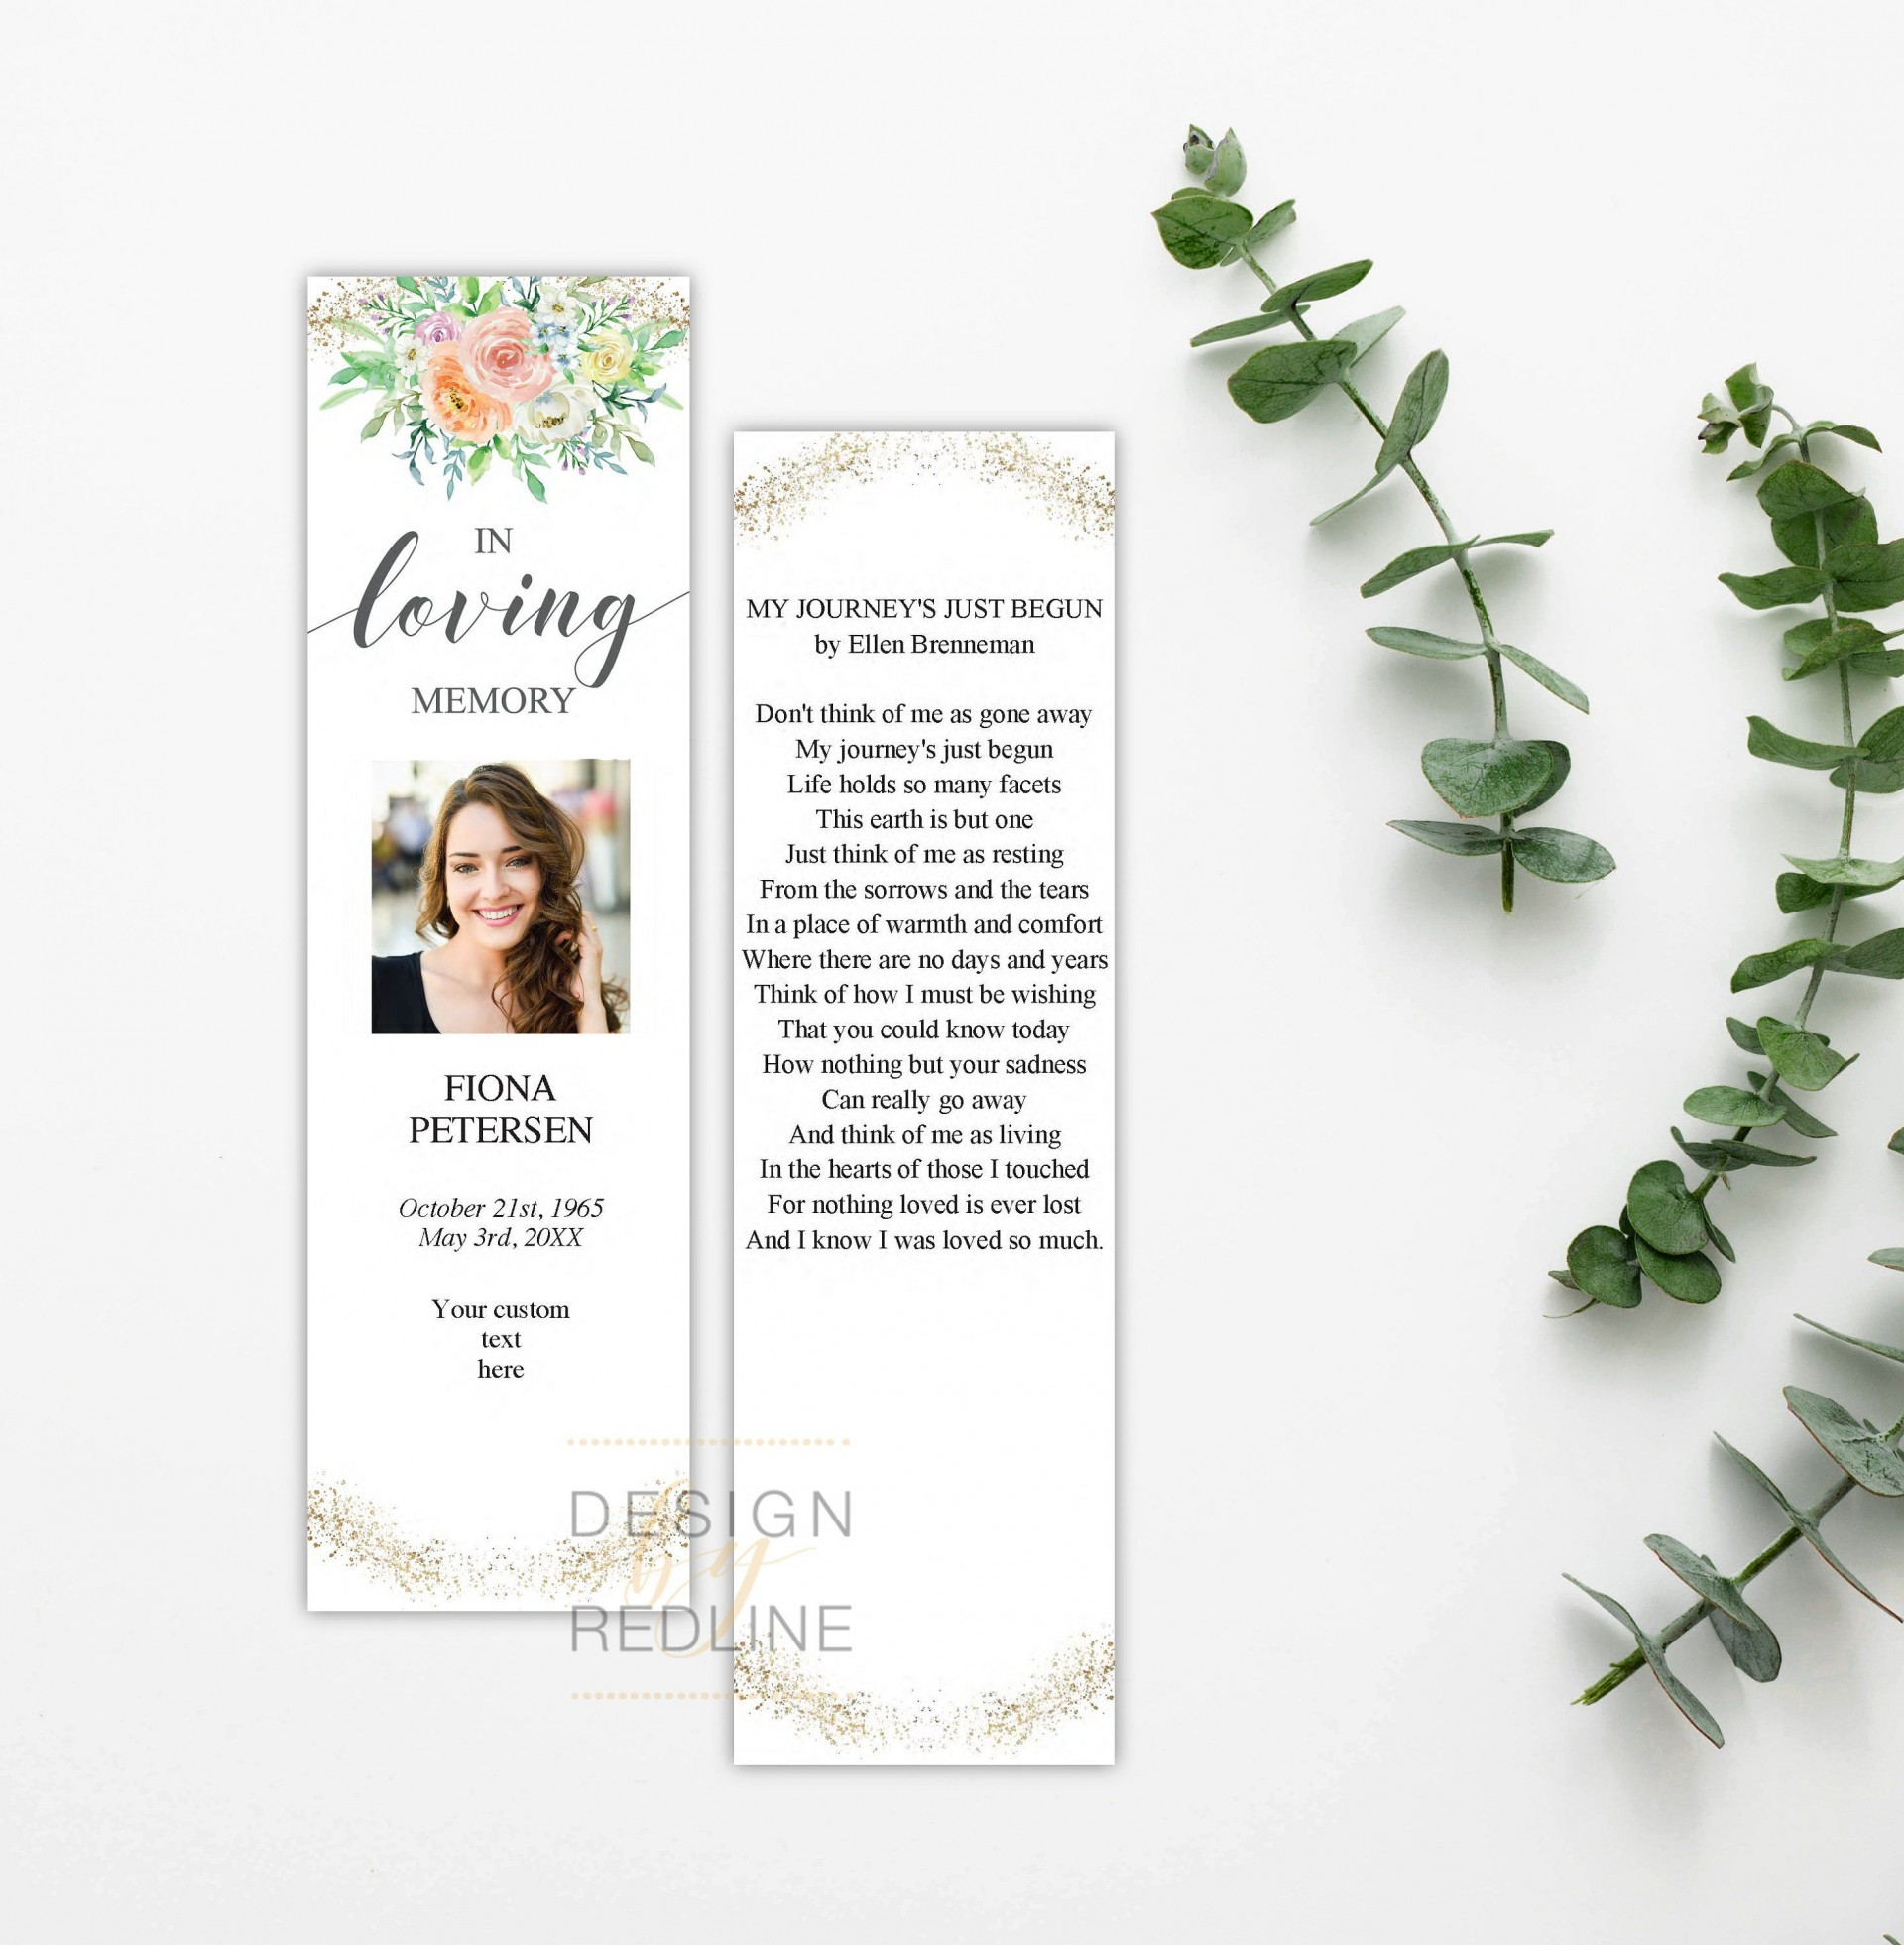 005 Surprising In Loving Memory Bookmark Template Free Download Concept 1920